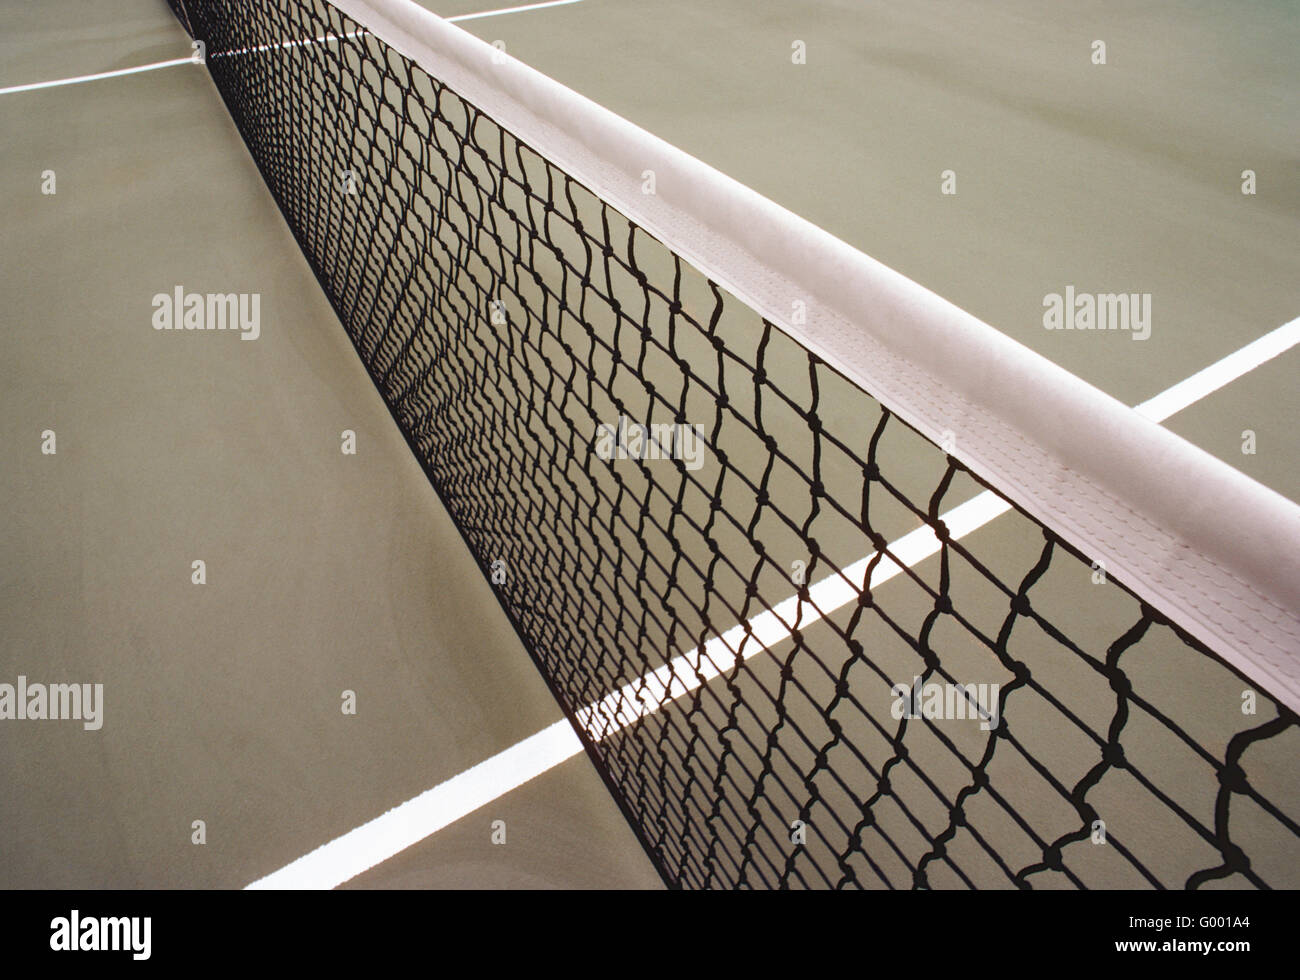 Close-up of tennis & net Photo Stock